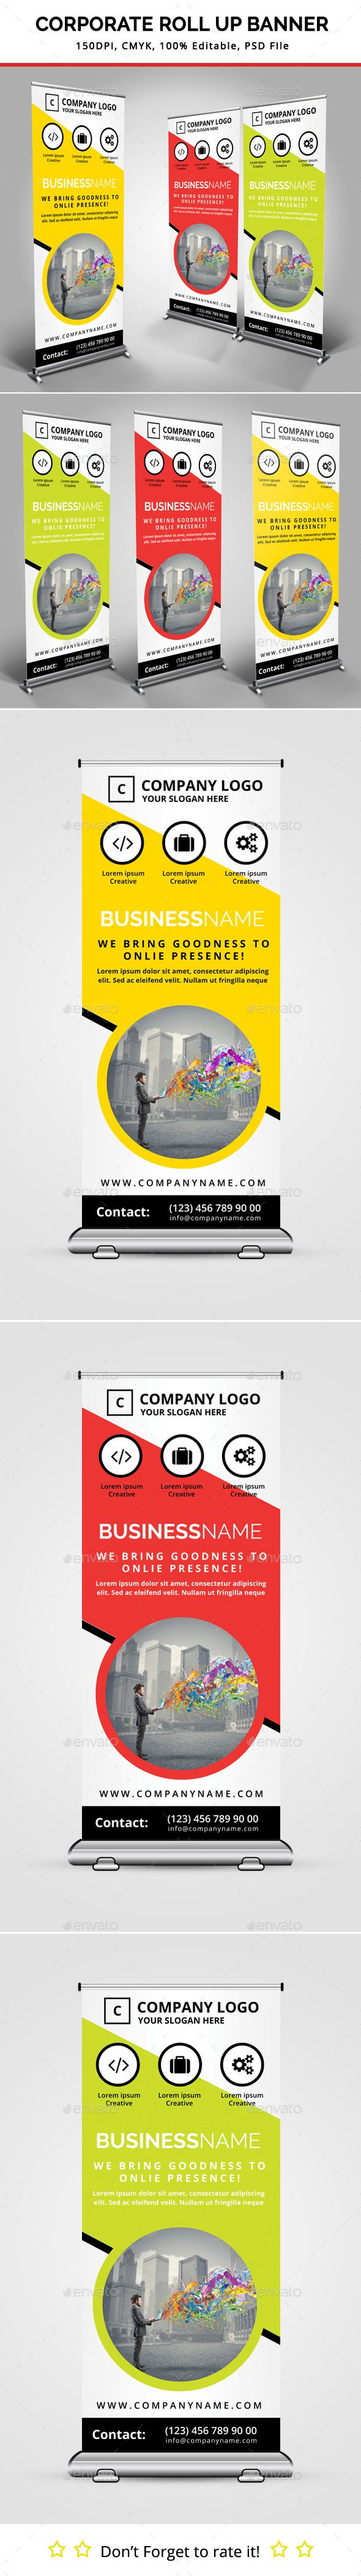 Corporate Roll Up Banner Template #design Download: http://graphicriver.net/item/corporate-roll-up-banner/11225518?ref=ksioks